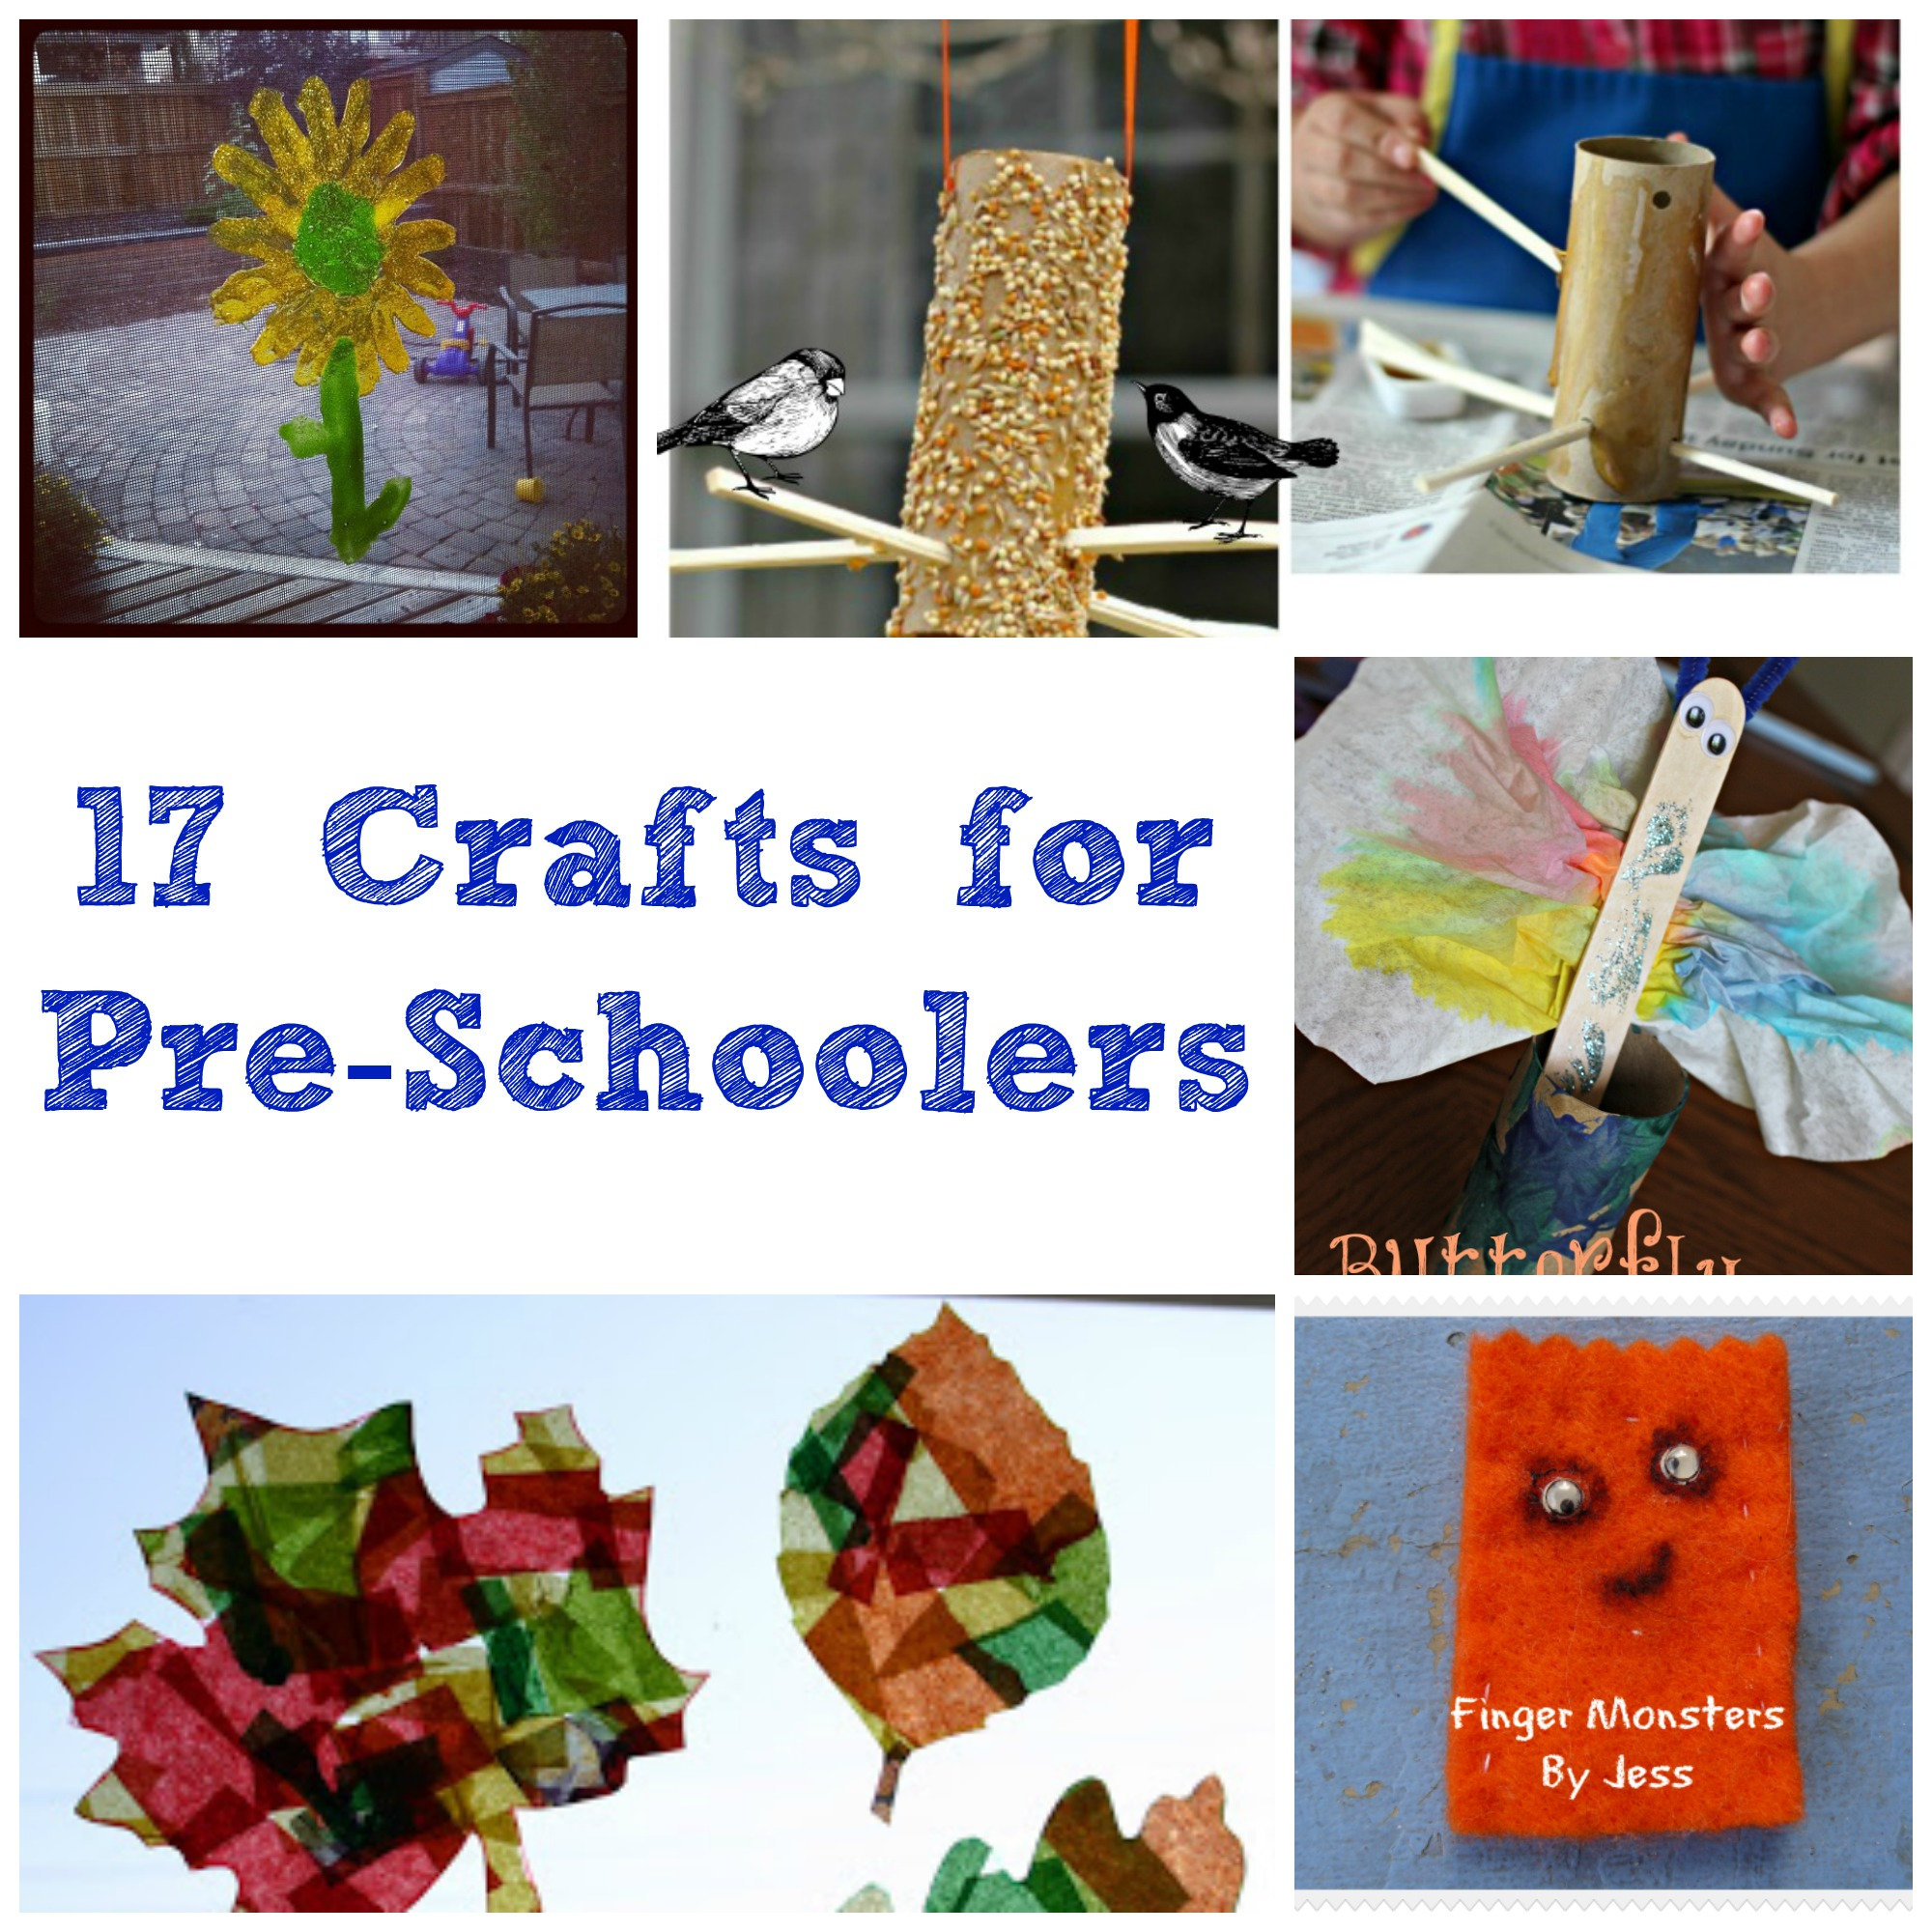 17 Crafts for Pre-Schoolers